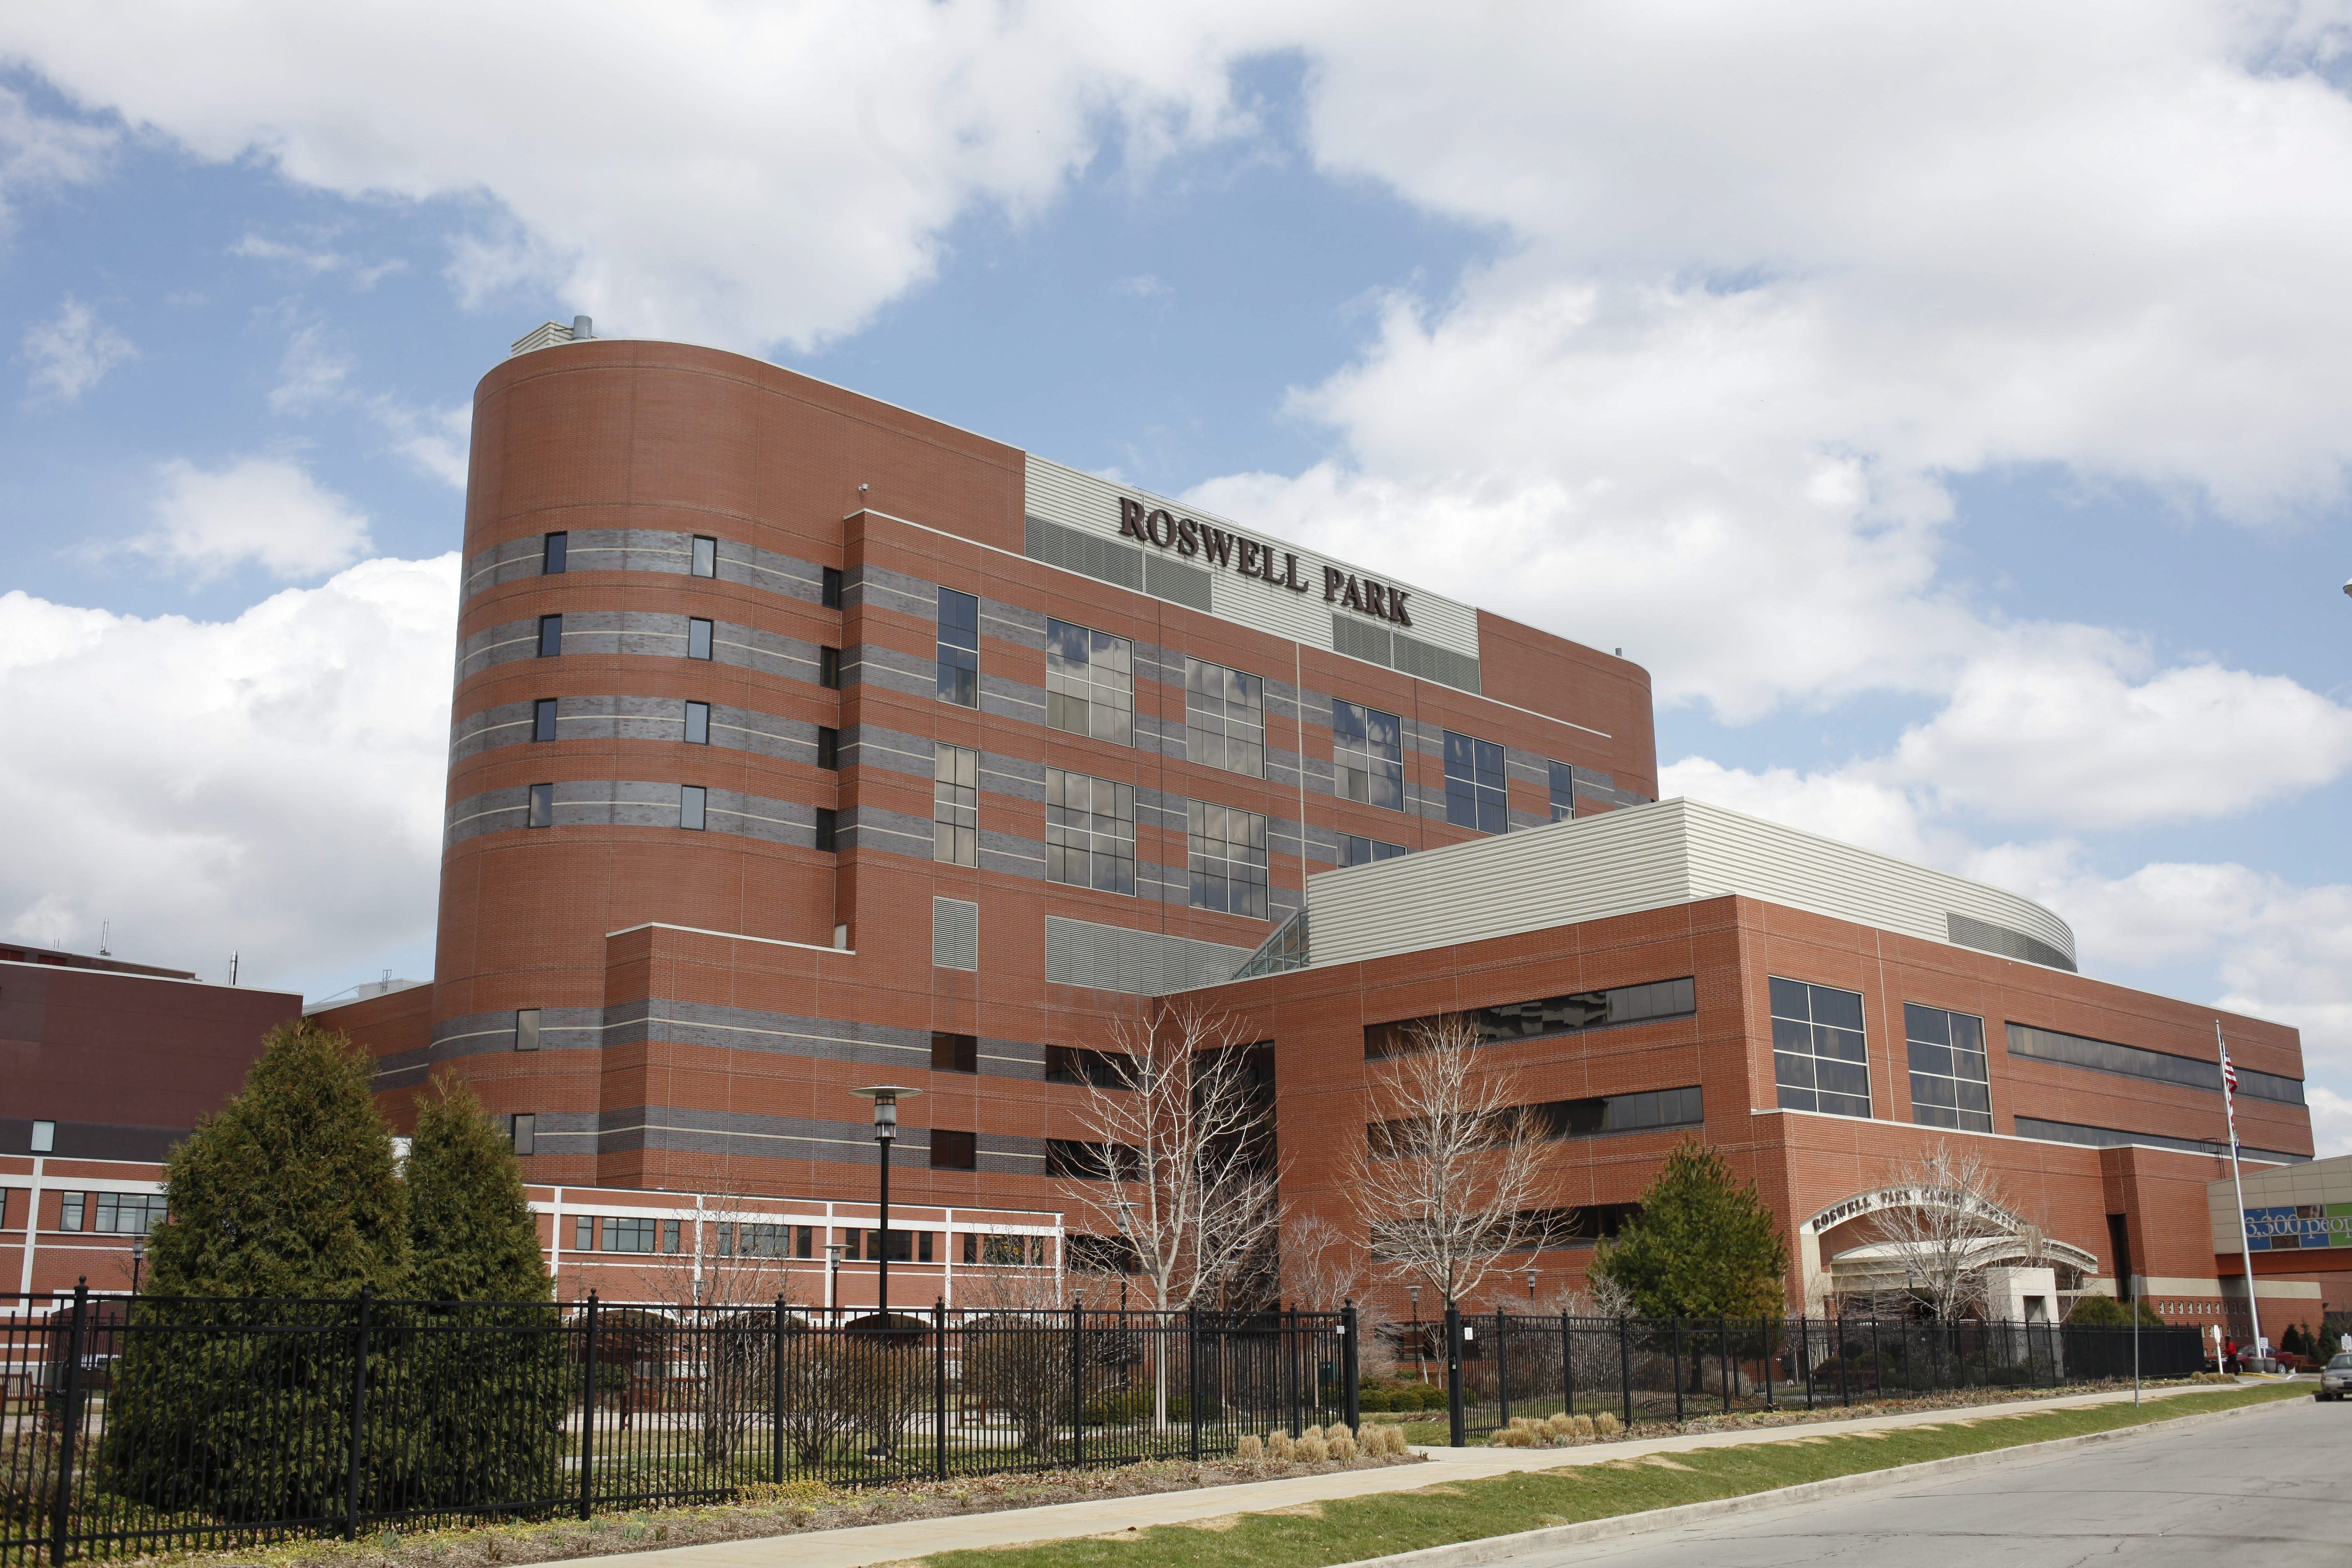 Roswell Park Cancer Institute is the home for life-saving science.